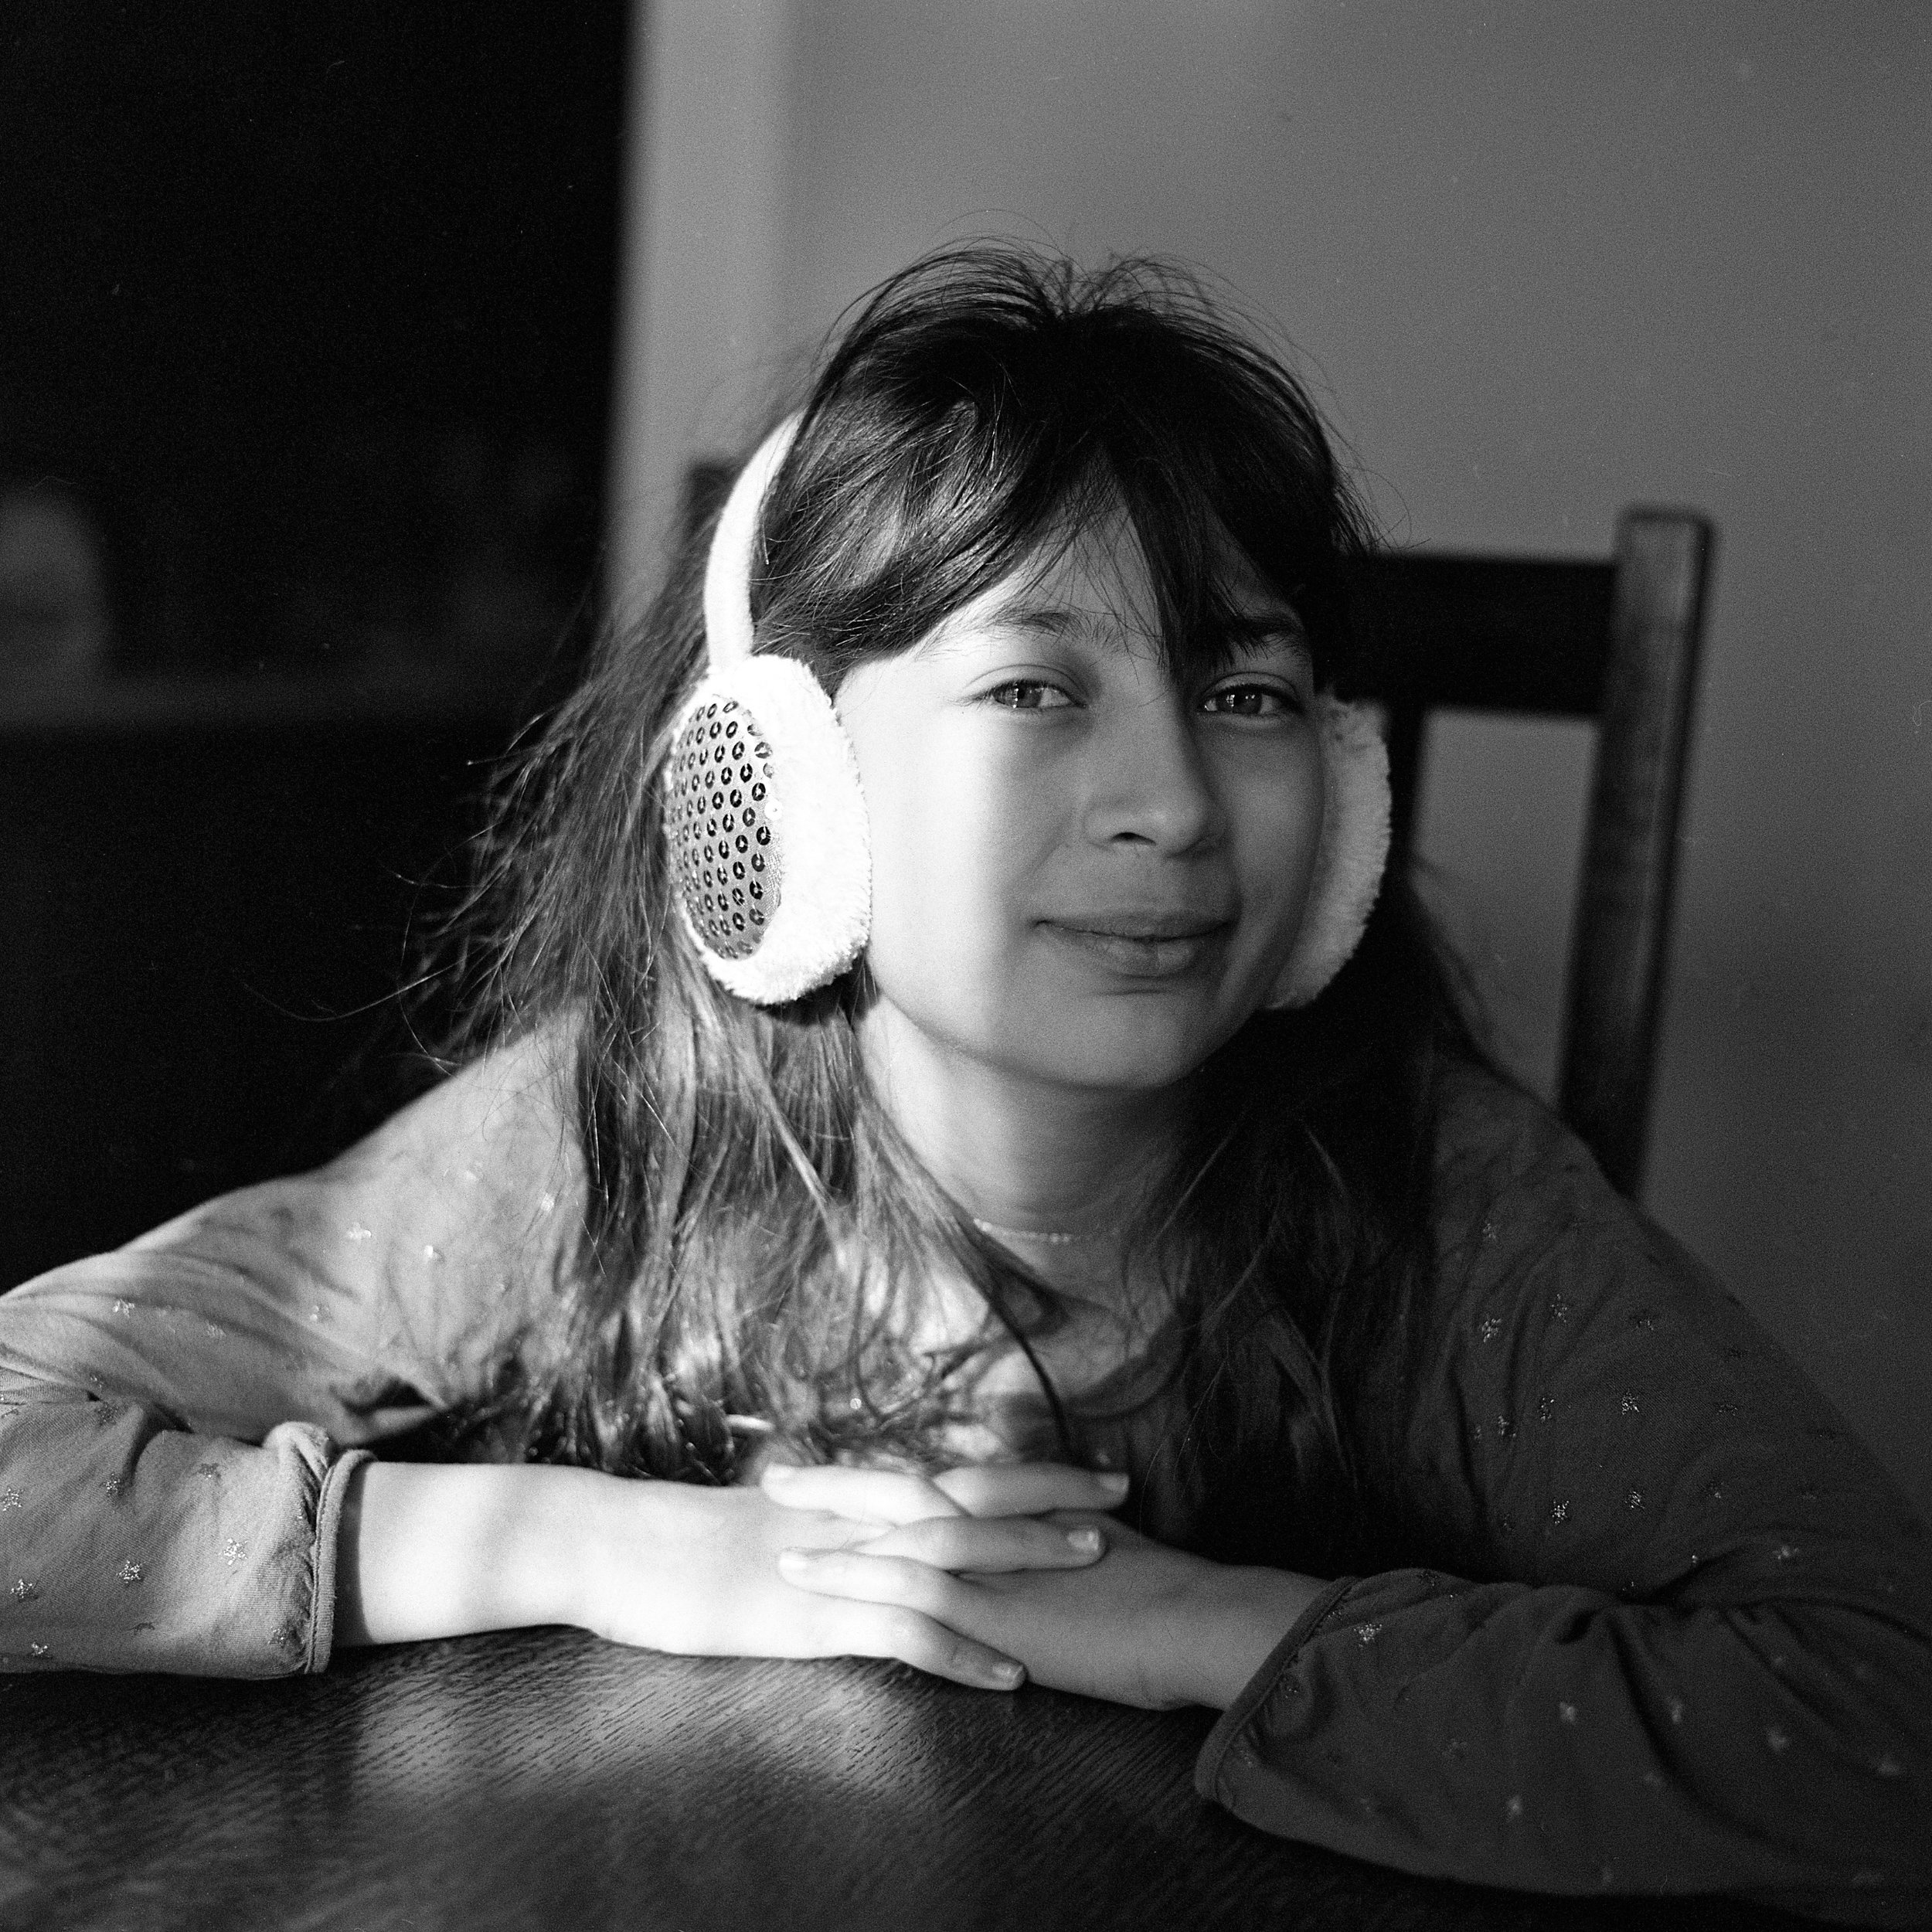 My daughter, Sofia, at the dining room table in early morning light. (Shot with a Rolleiflex 6008i medium format SLR camera and 80 mm f/2.8 lens on Tri-X 400 black-and-white film.)